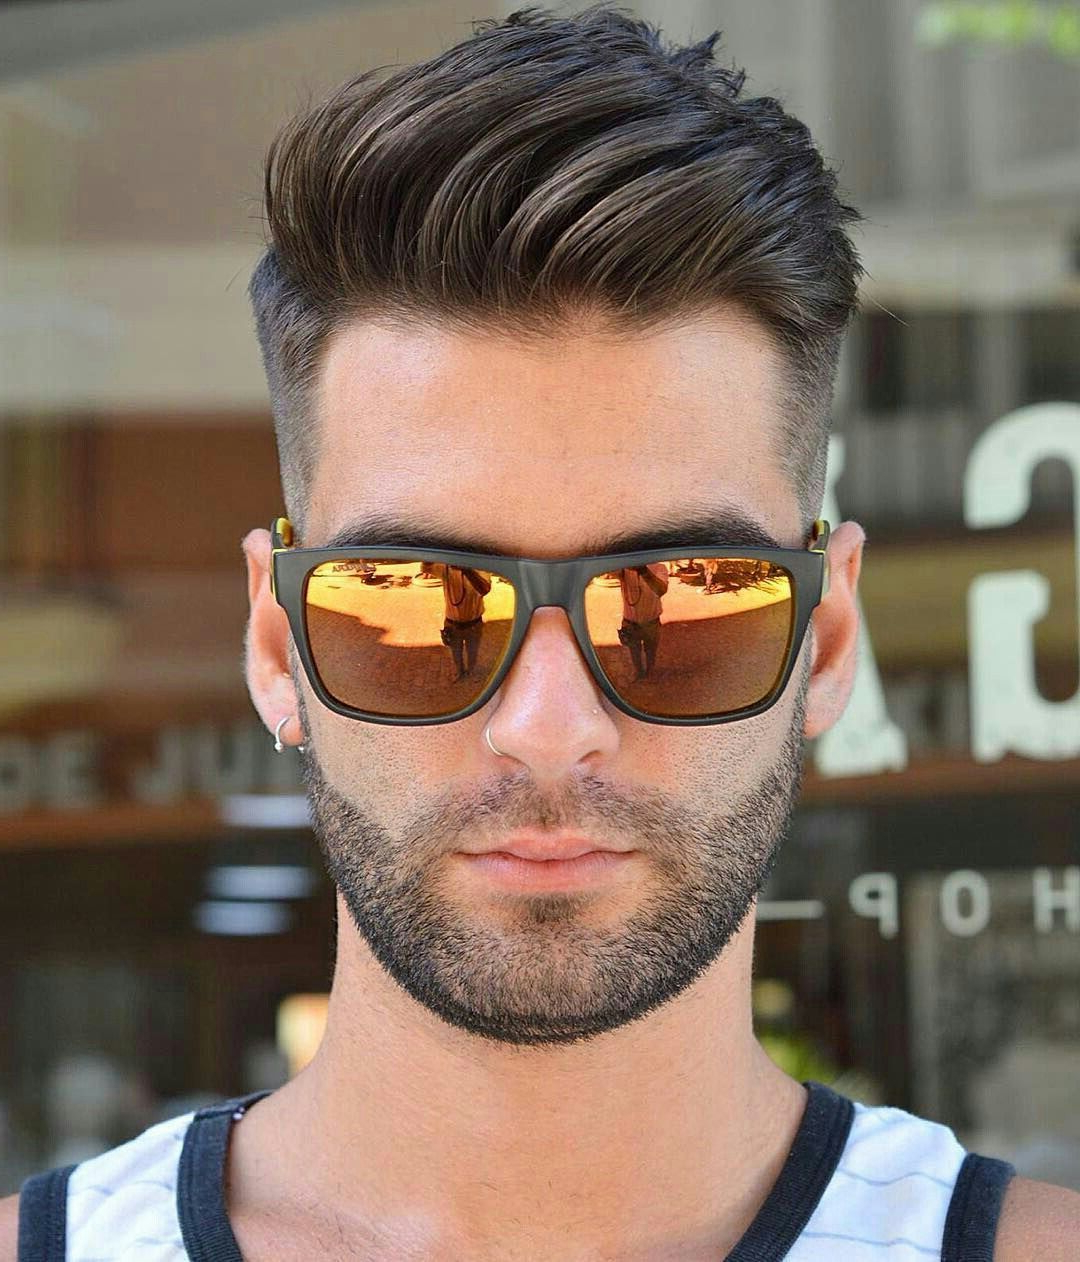 Hair Styles, Haircuts For Men (View 18 of 20)